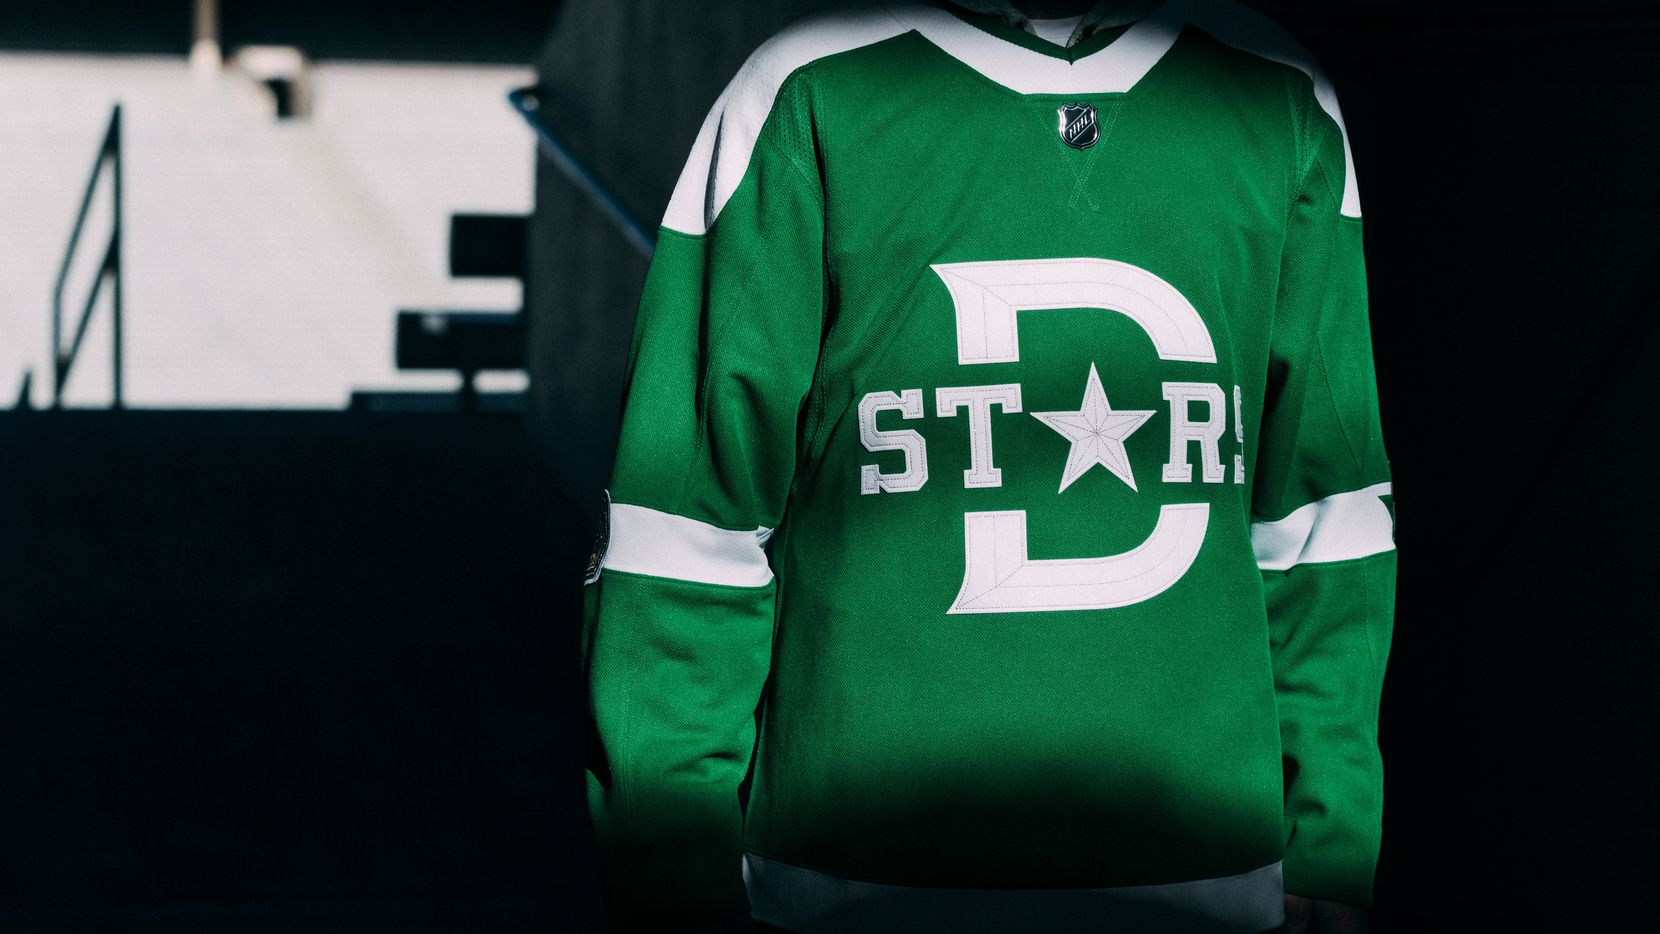 The Dallas Stars will wear this jersey during the Winter Classic on Jan. 1 against the Nashville Predators at the Cotton Bowl. It will be the southernmost outdoor game in NHL history. (Courtesy/Dallas Stars)